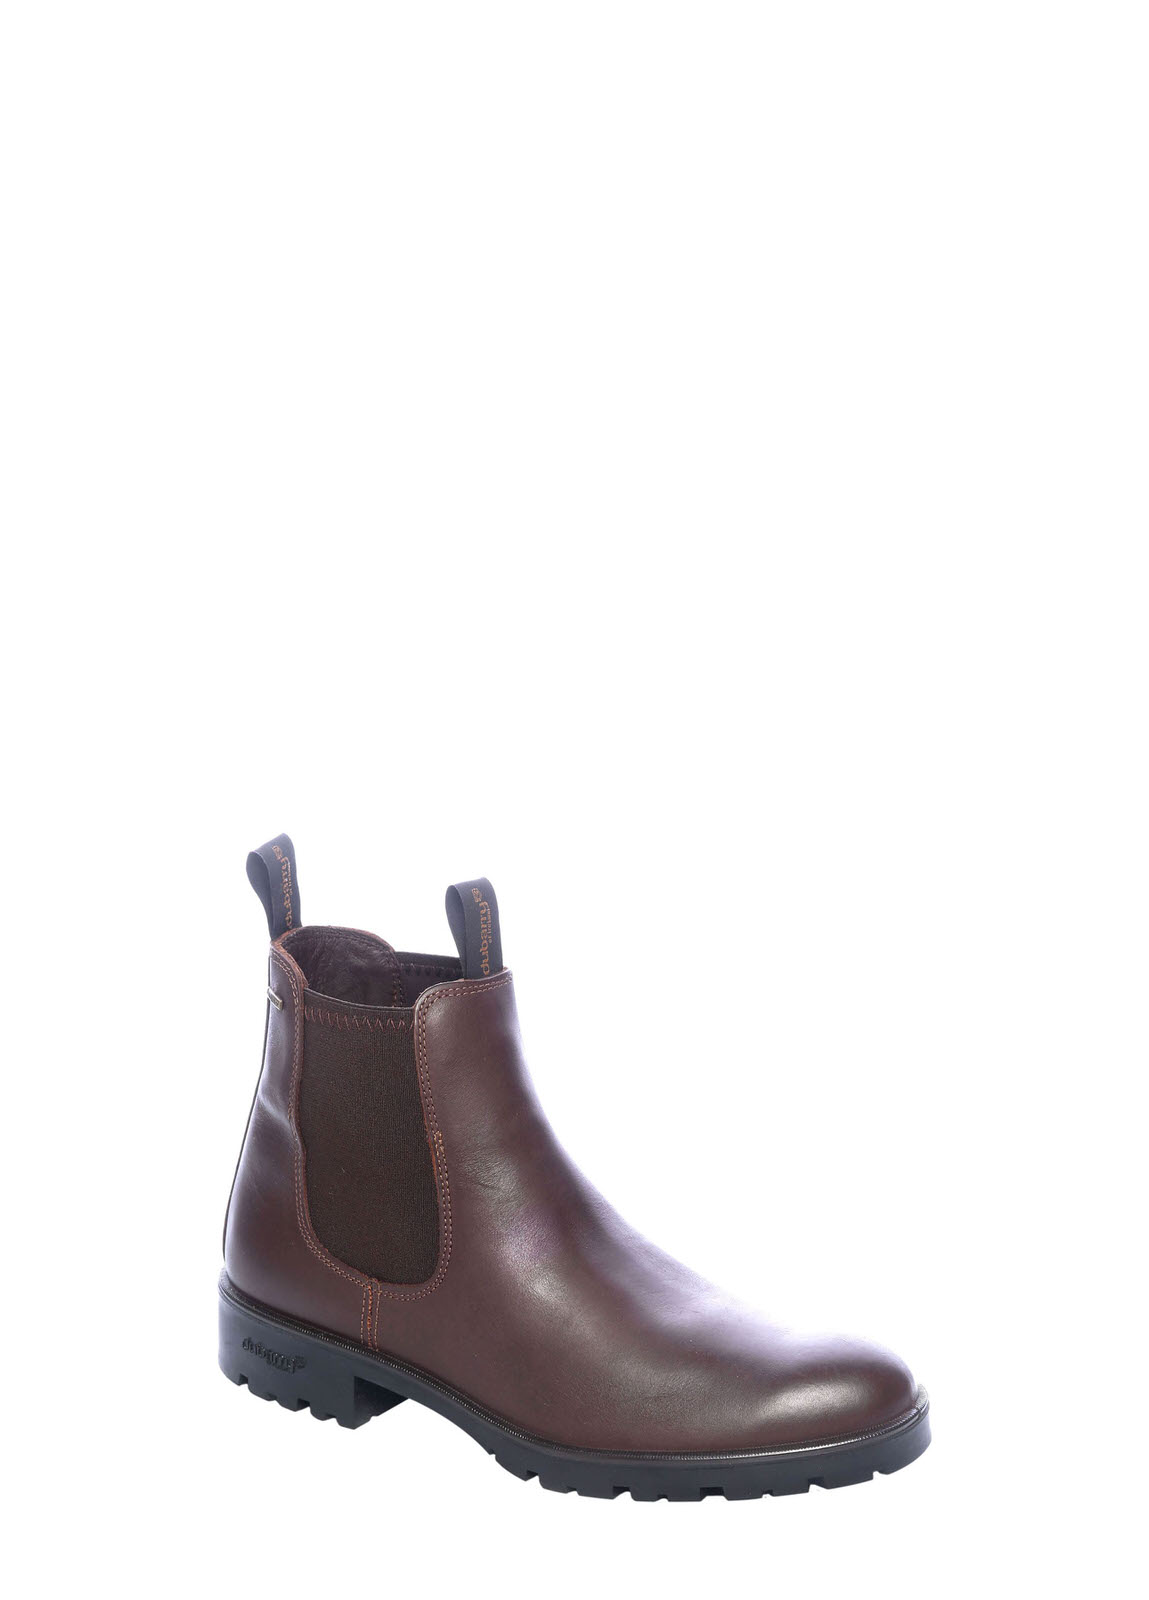 Dubarry_ Wicklow Mens Leather Boot - Mahogany_Image_1